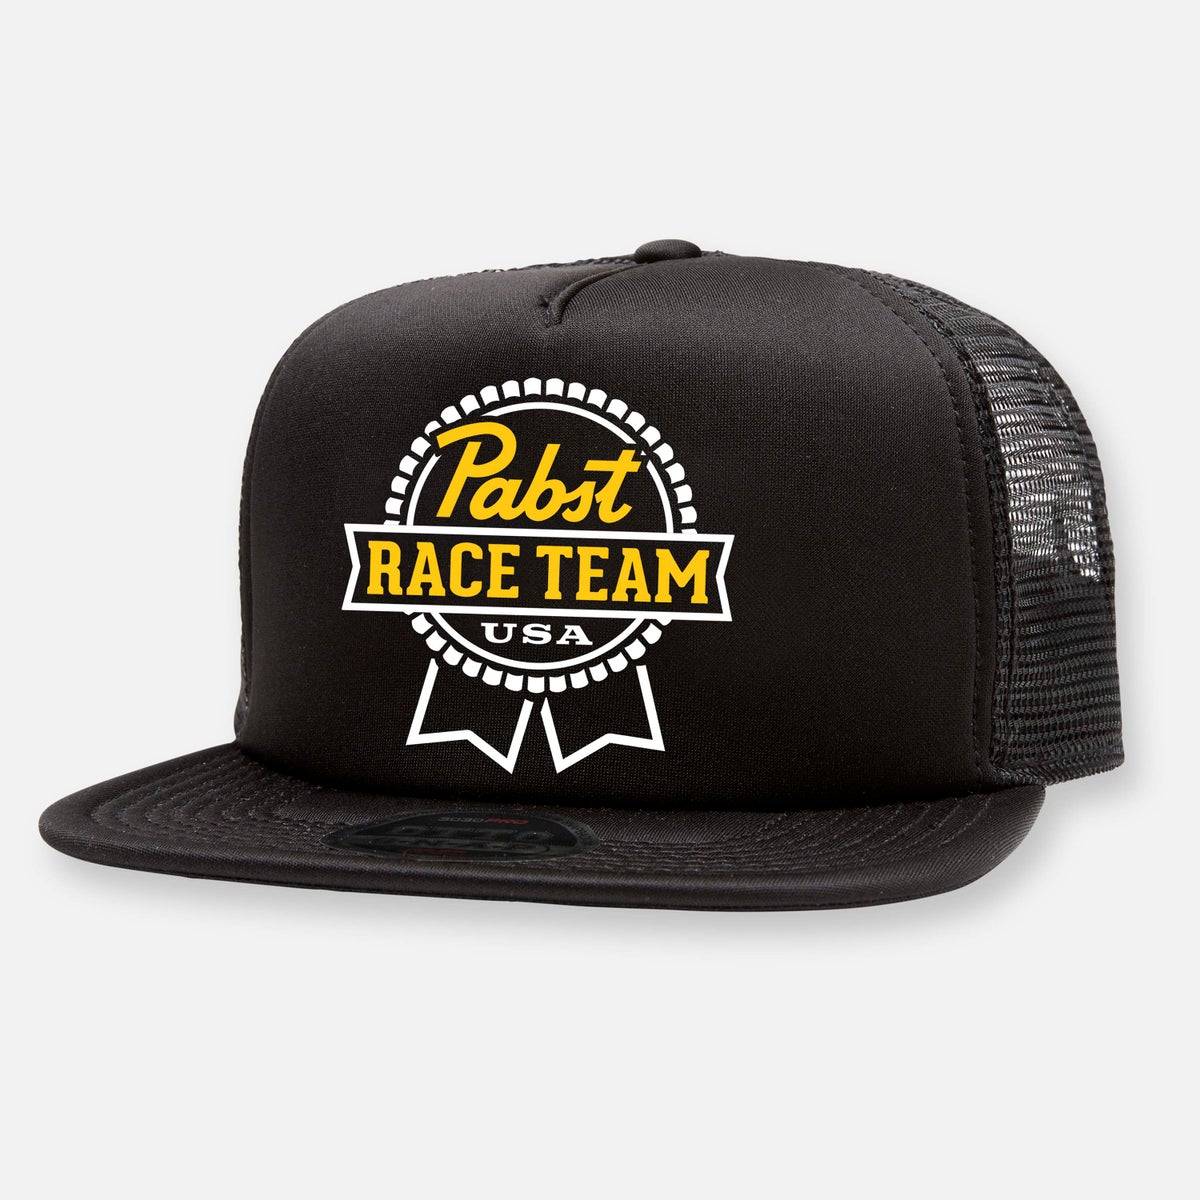 Image of PABST RACE TEAM HAT COLLECTION